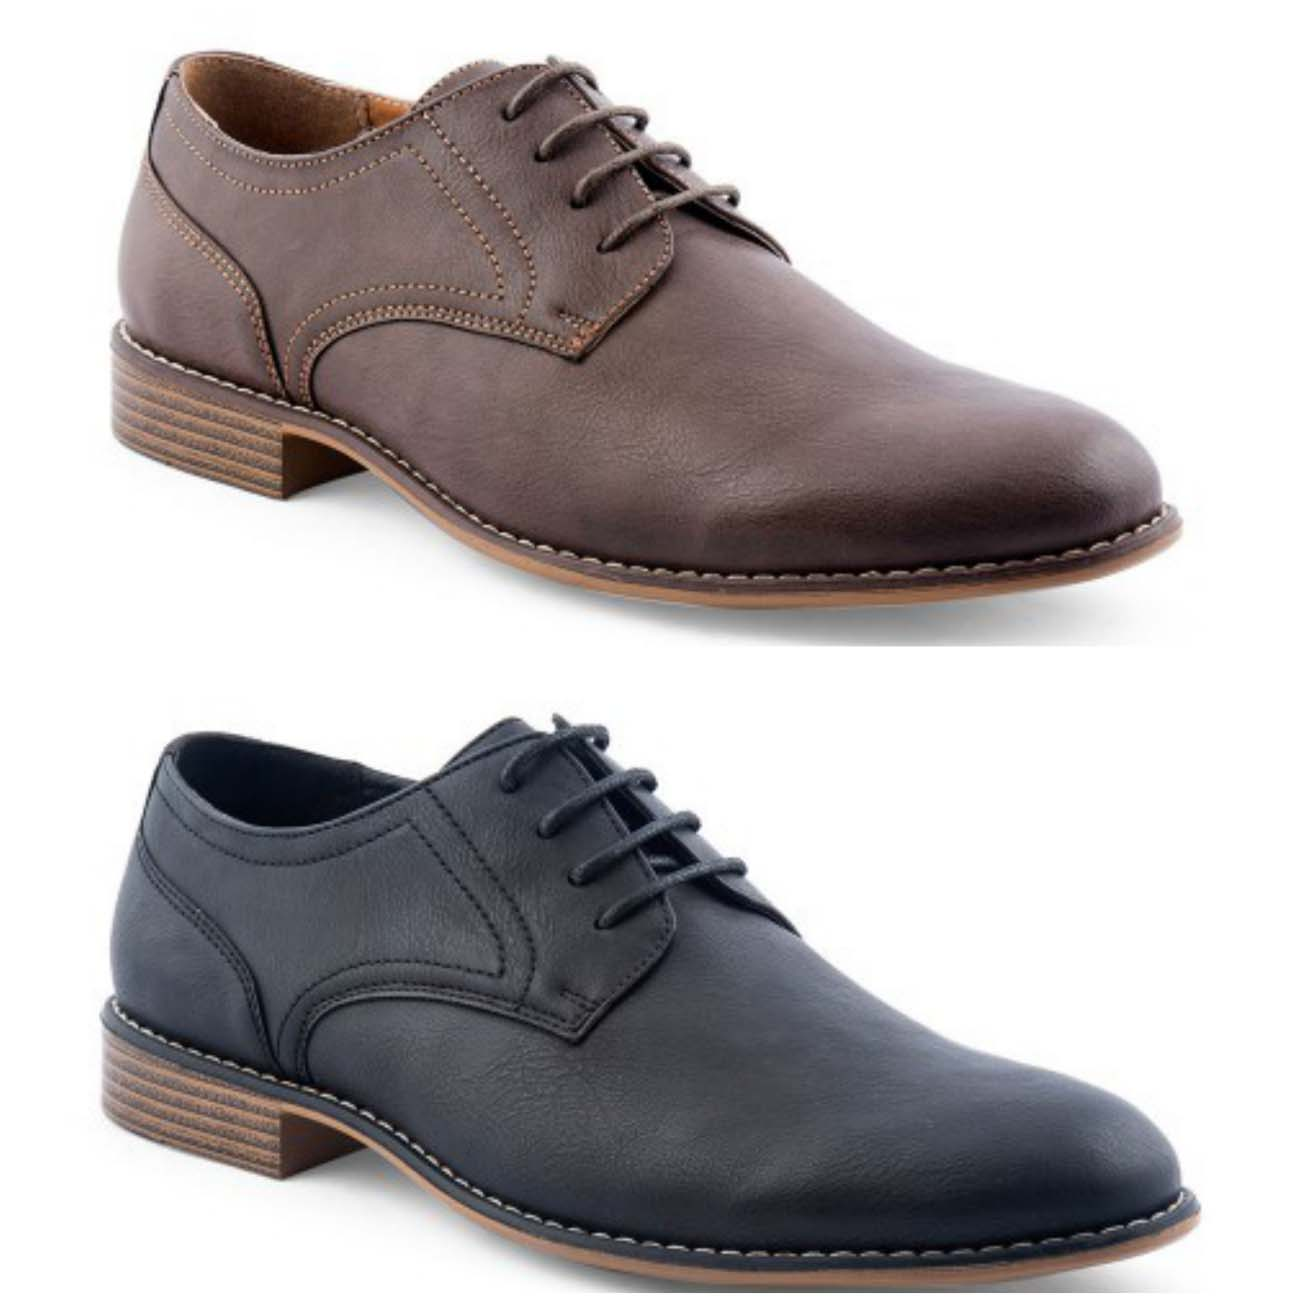 Shoe Colors For The Fall Men